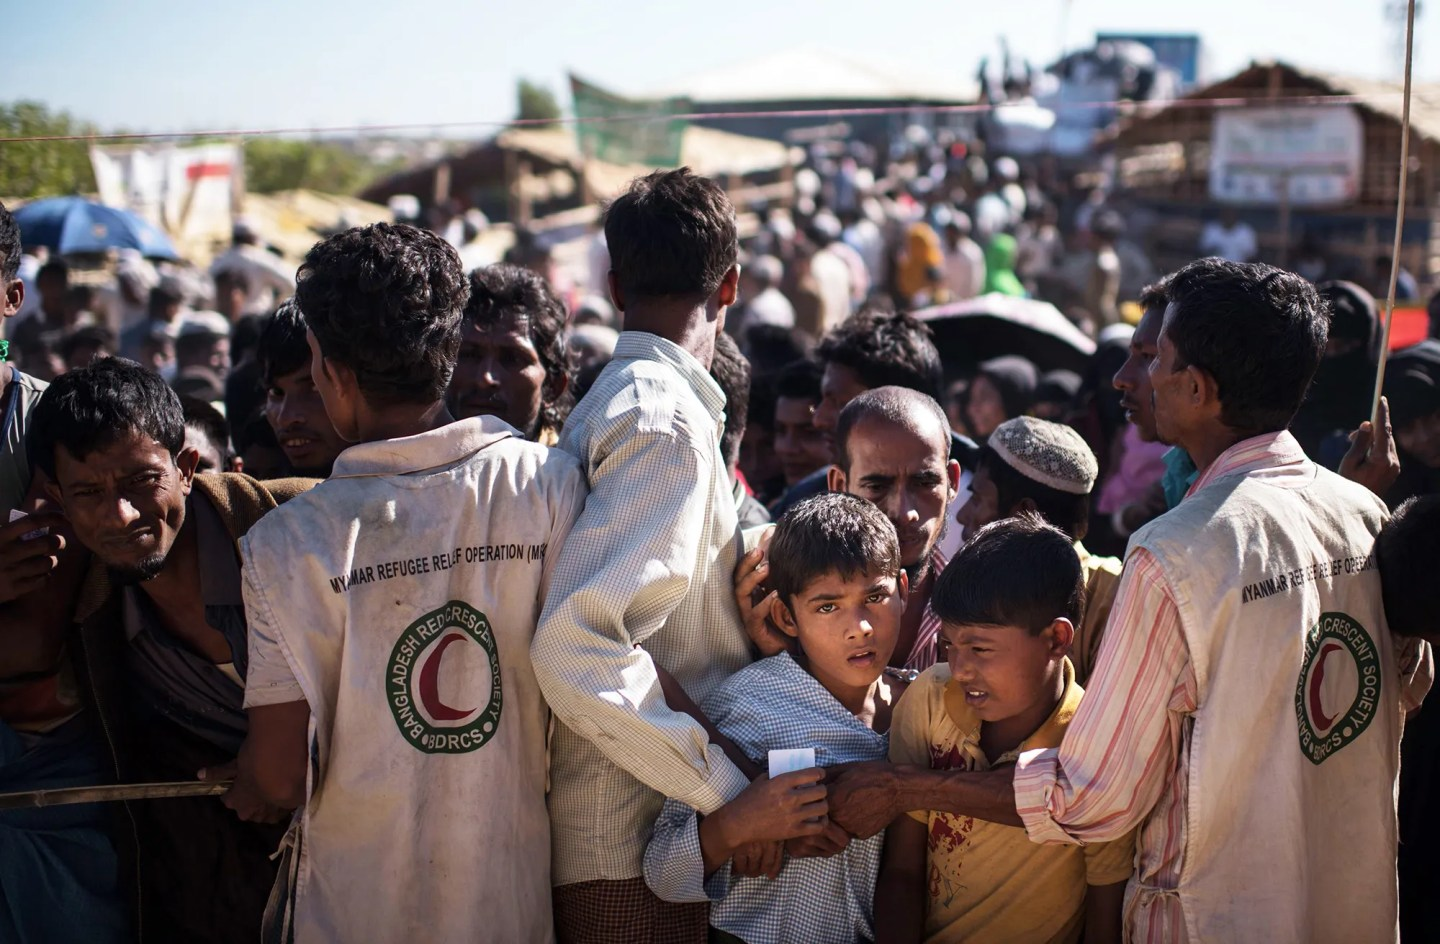 Rohingya Muslim refugee children queue for aid supplies at the Kutupalong refugee camp in Cox's Bazaar in Bangladesh on Dec. 4, 2017.